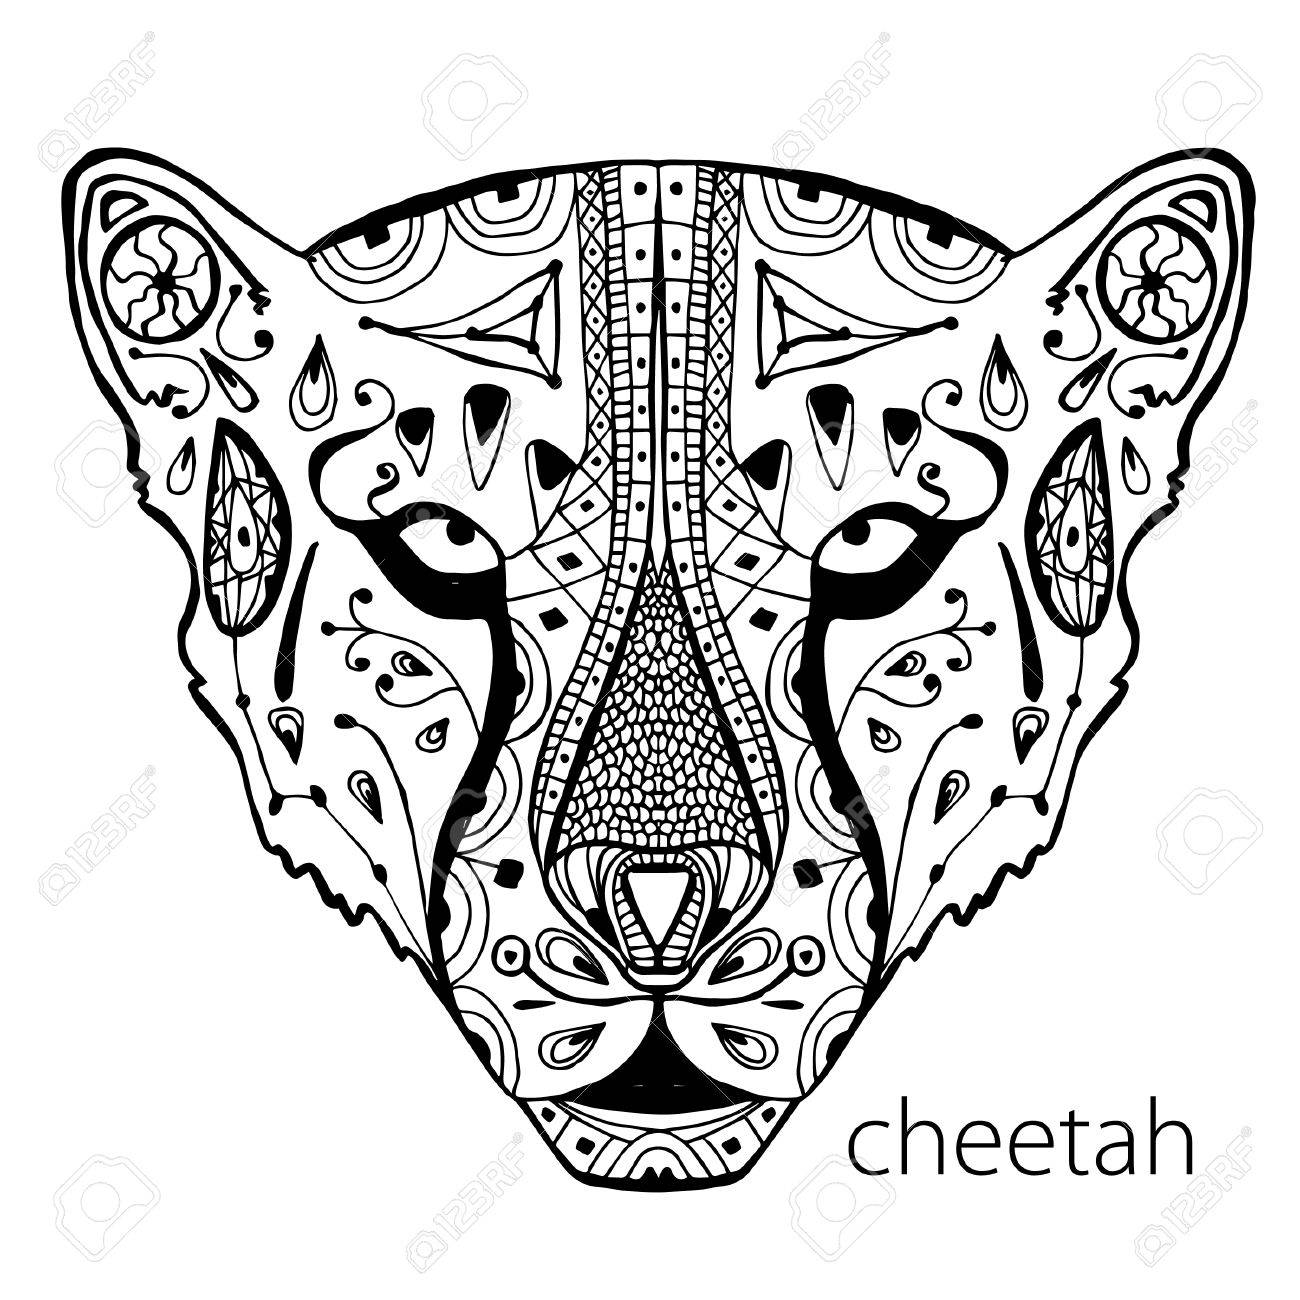 Coloring pages cheetah - 58525714 The Black And White Cheetah Print With Ethnic Patterns Coloring Book For Adults Antistress Art A54692fcacc05b71e2c32730fdf17c9f Coloring Pages